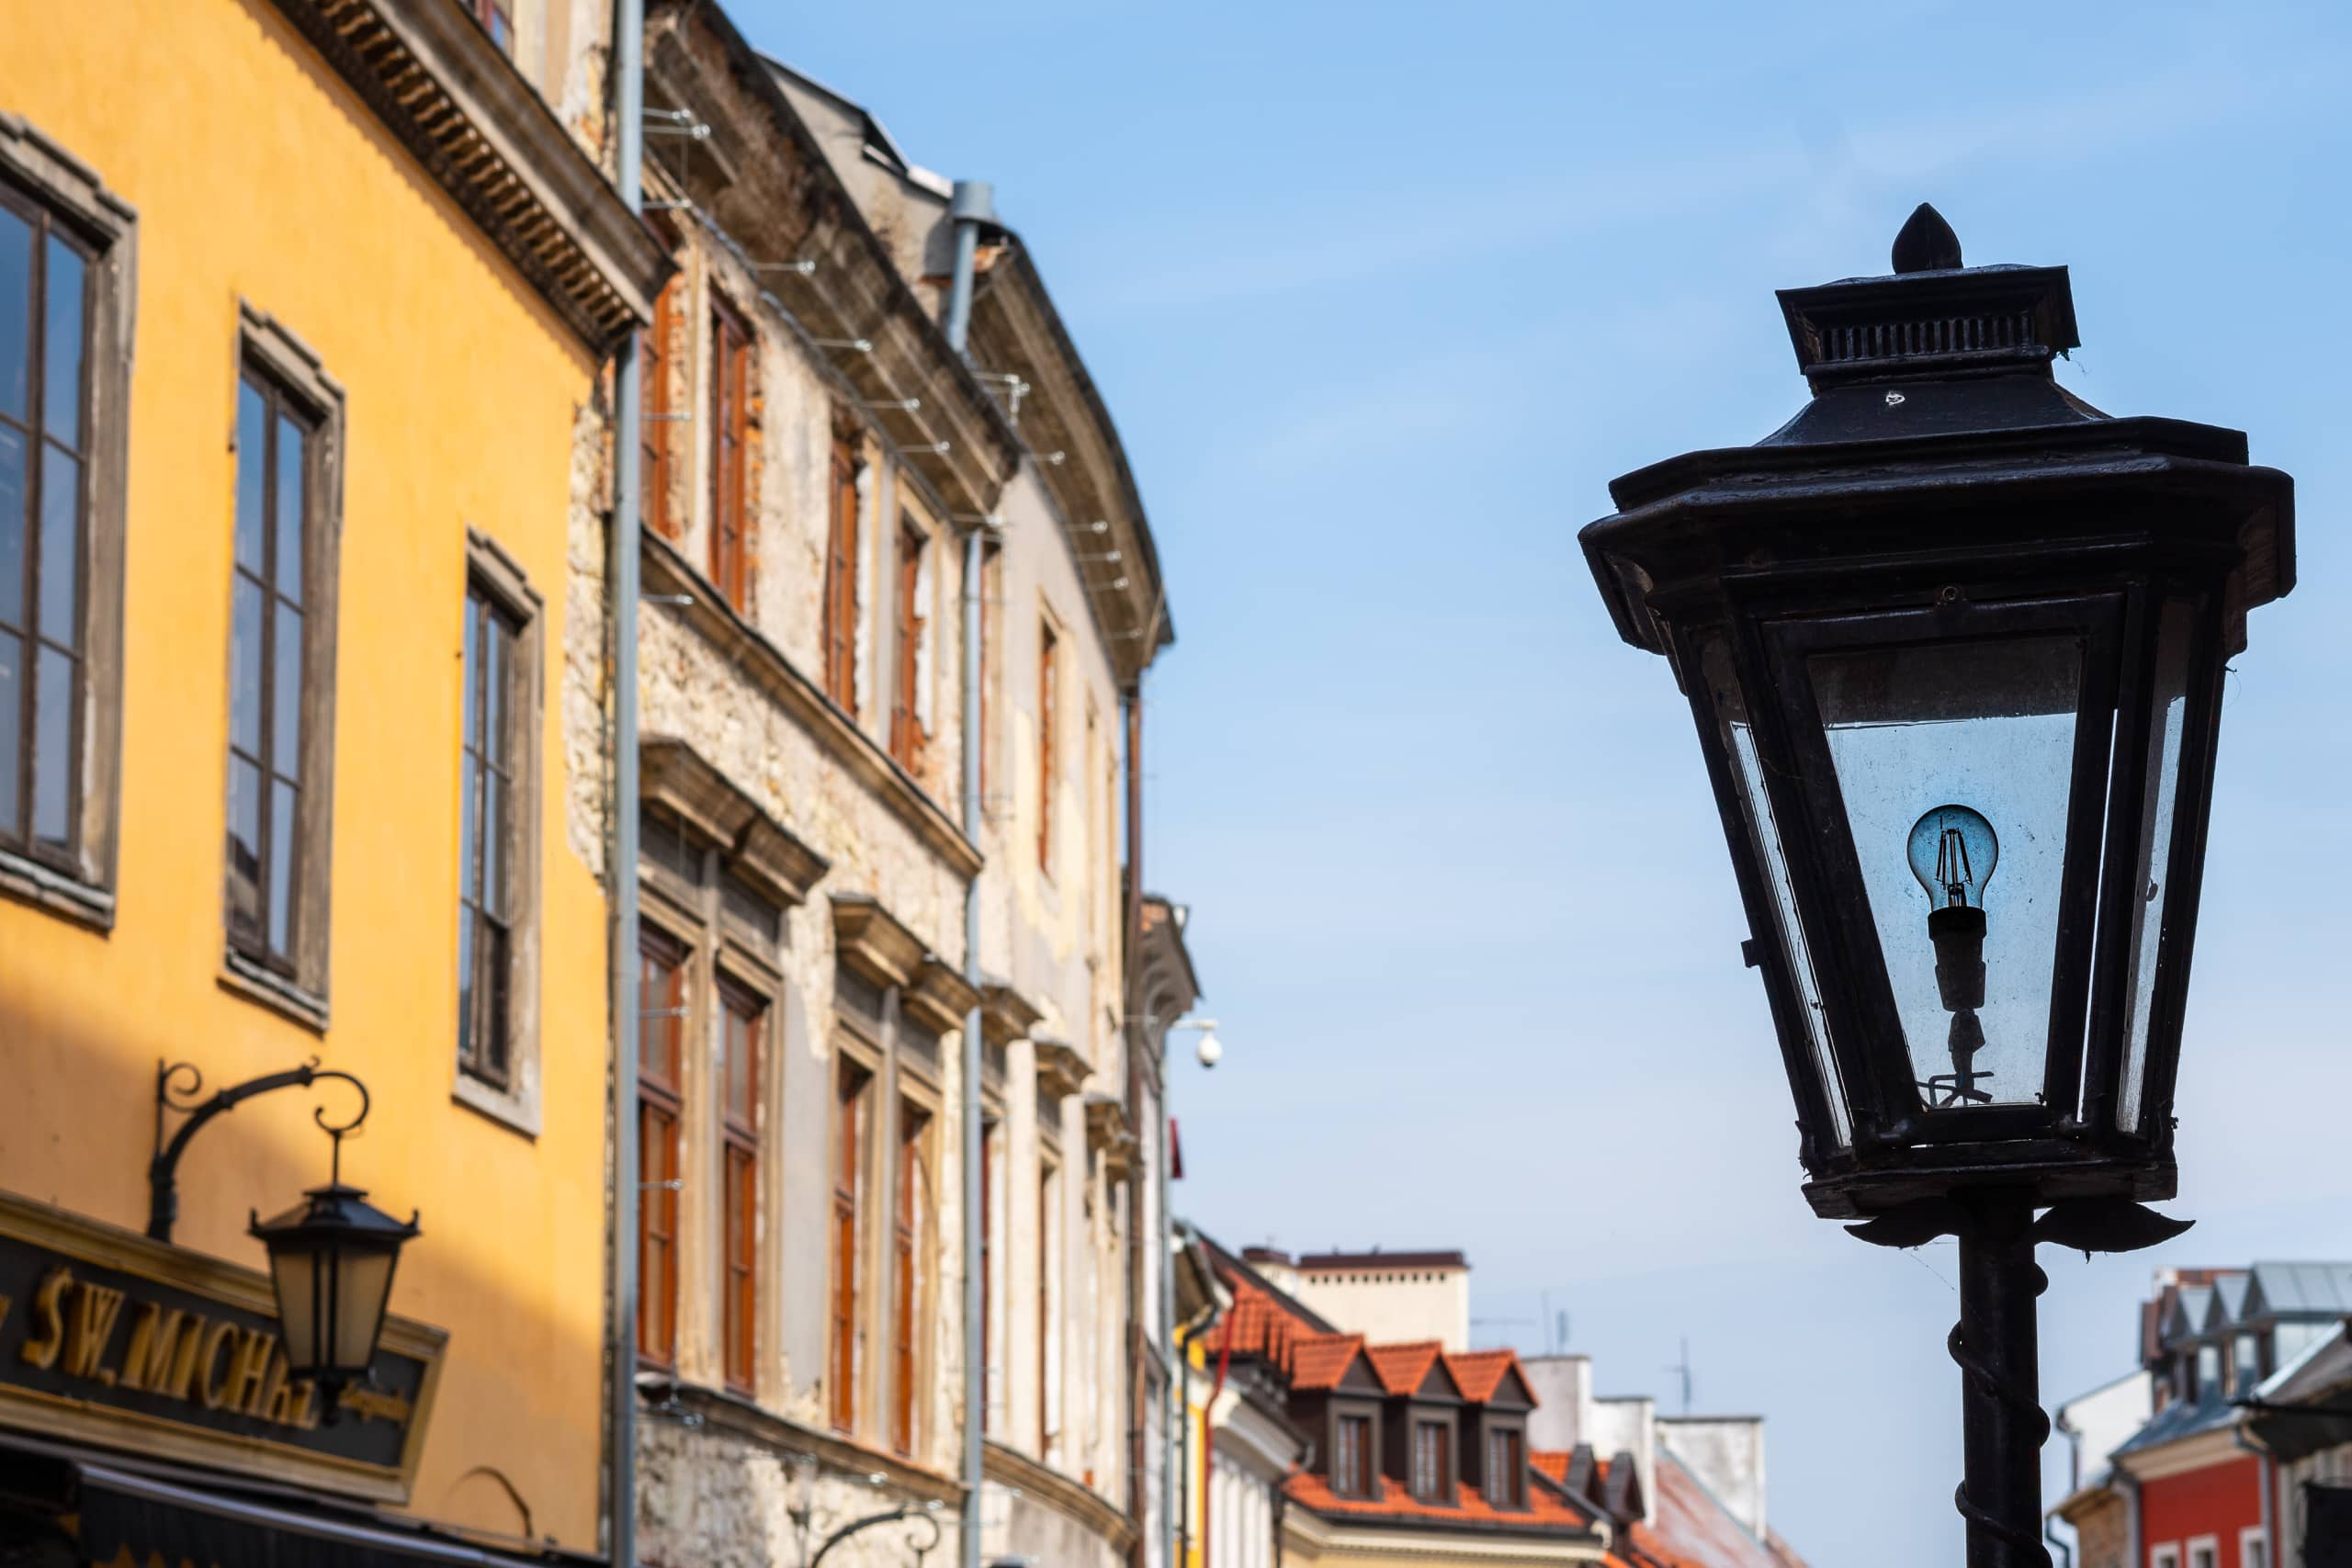 Street lantern in the Old Town | f/8 1/250sec ISO-100 55mm  | ILCE-6500 | 2018-09-08 11:11:31